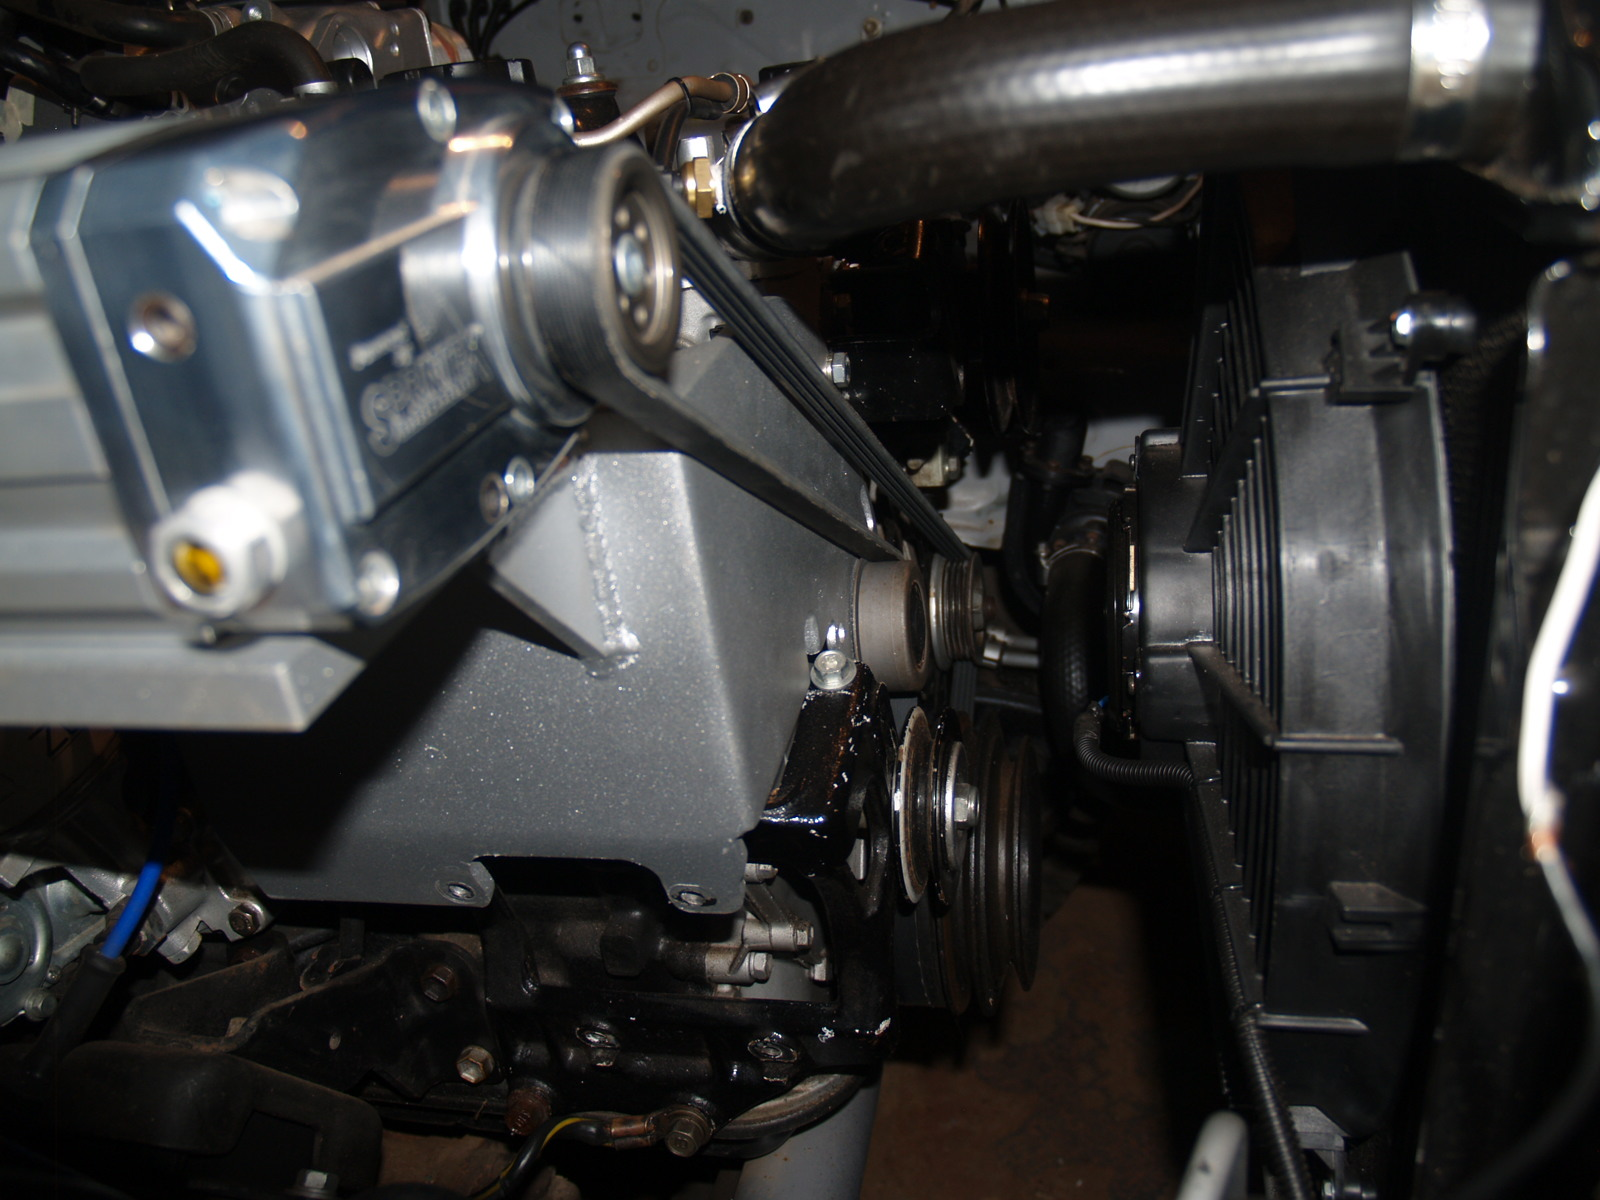 4y Supercharger Toyota Supercharged Rebuild How Timing Engine The Painted Finish Is Baked On 650 Hi Temp Magnesium Alloy